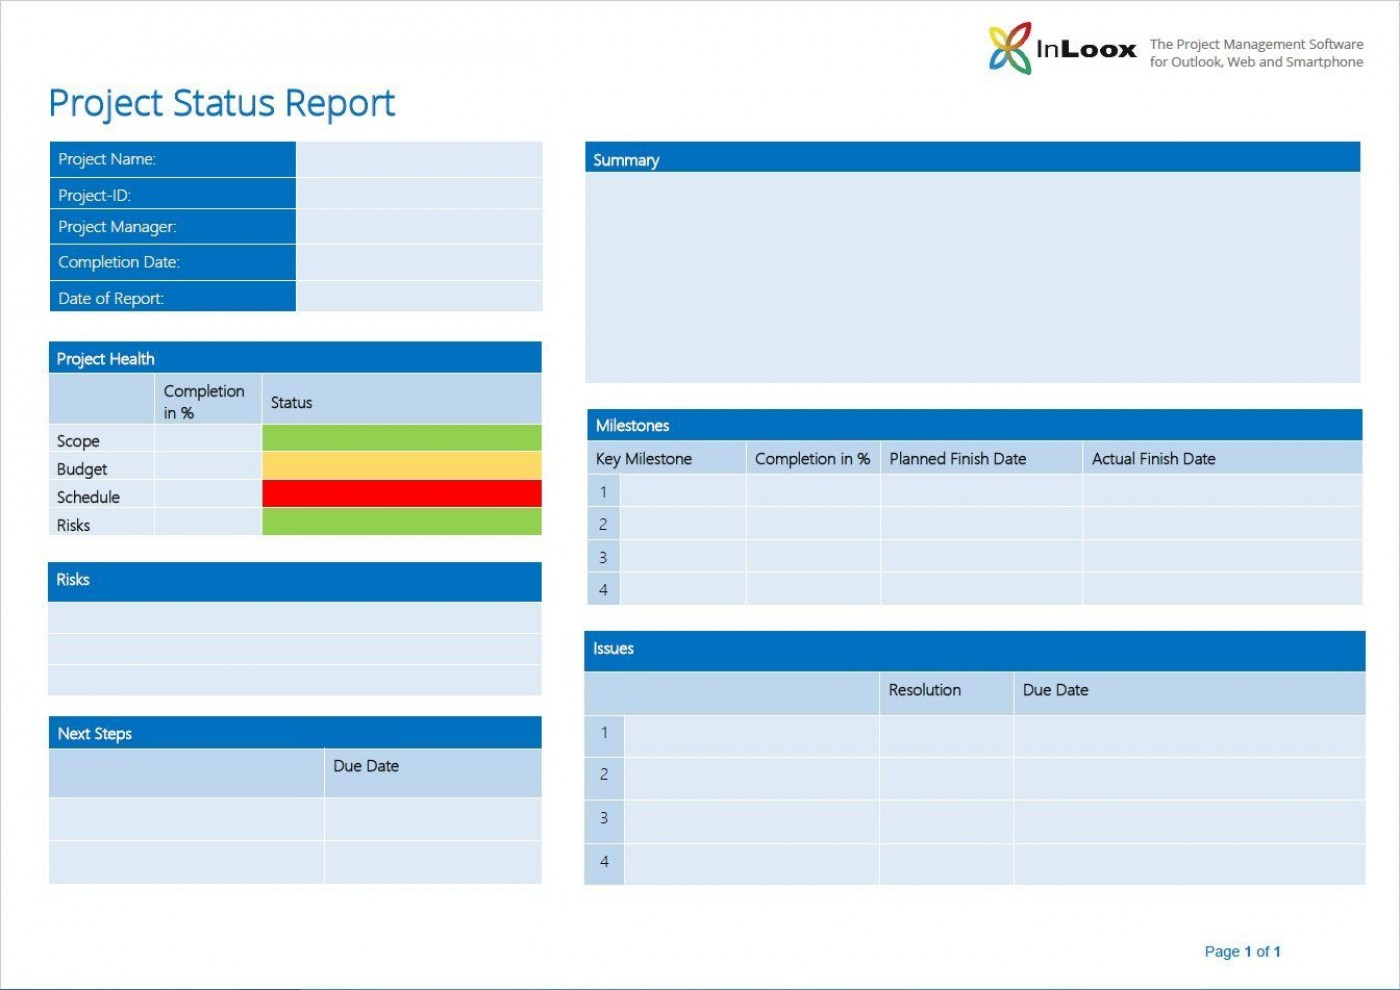 006 Excellent Project Management Weekly Statu Report Sample High Definition  Template Excel Agile1400